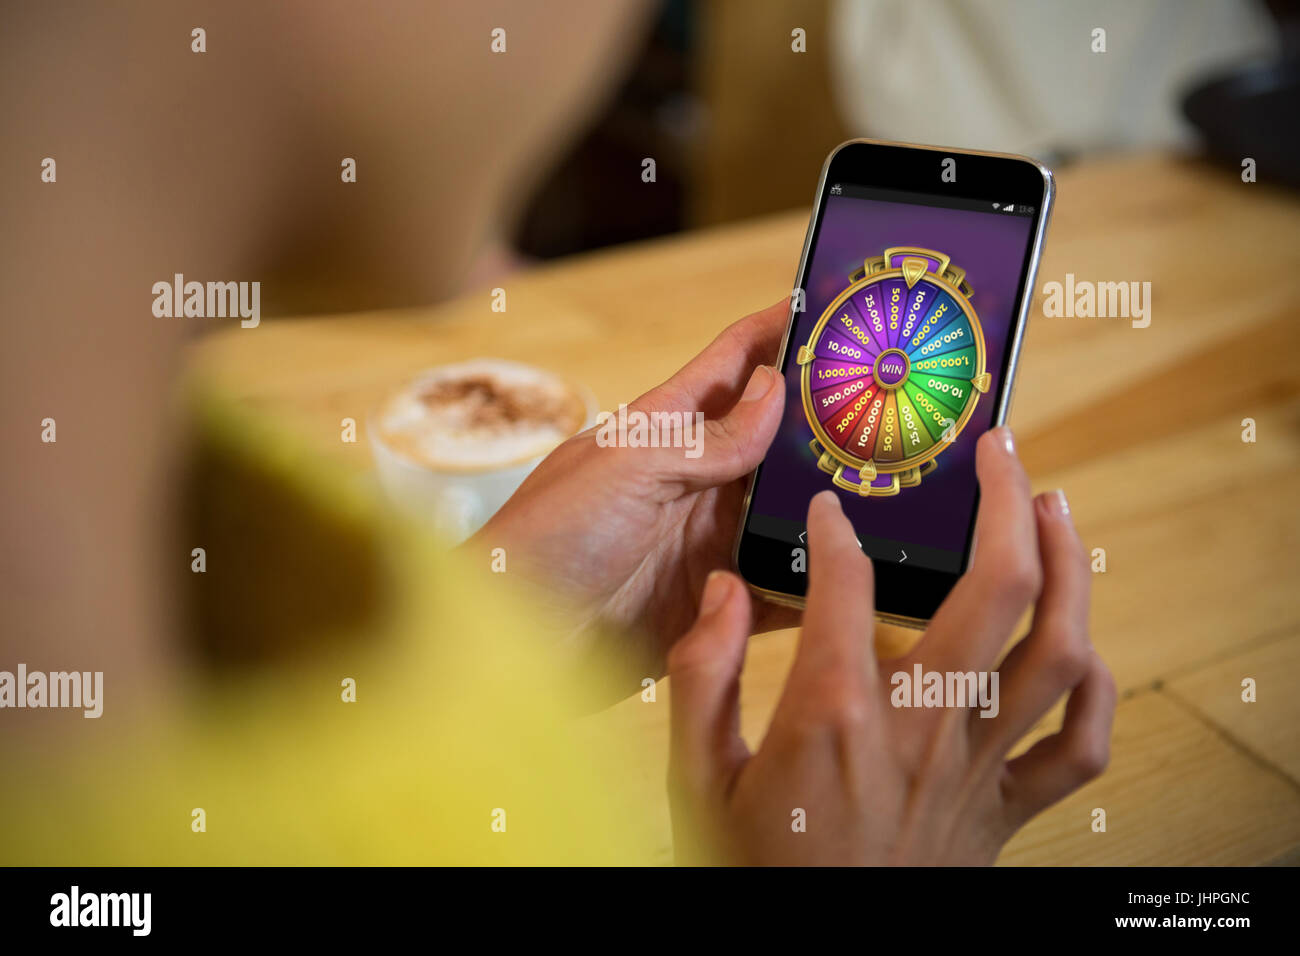 Multi colored fortune of wheel on mobile display against woman using mobile phone at table in cafe - Stock Image